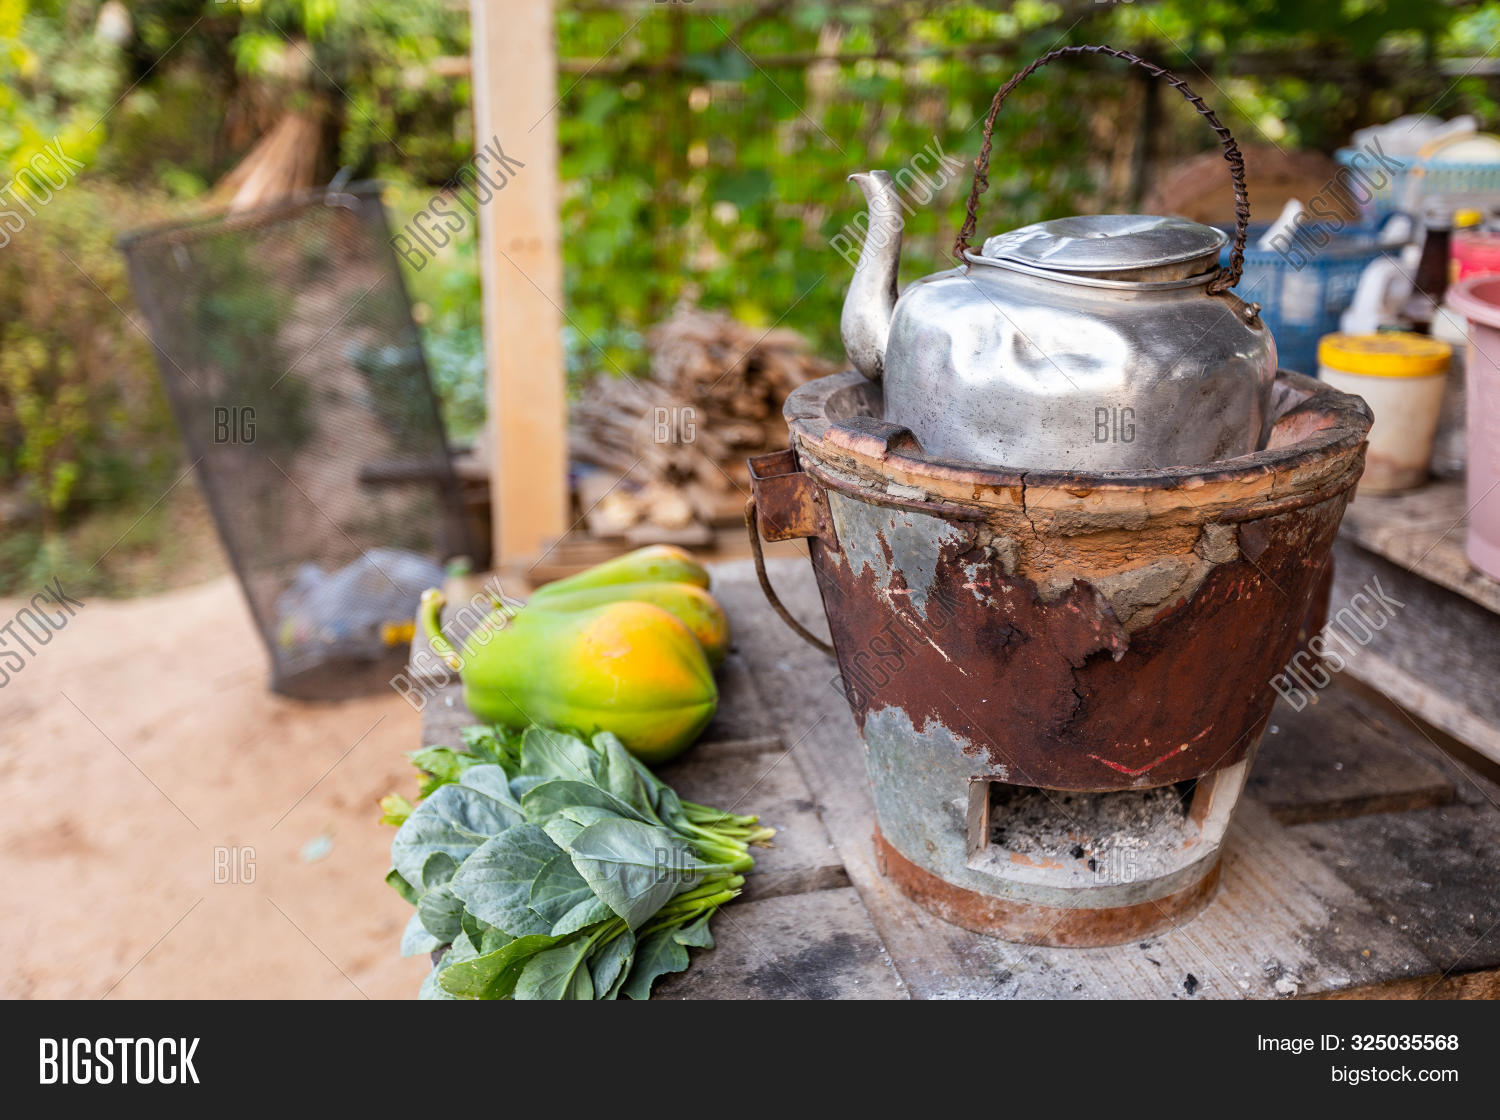 Old Thai Kettle On Thai Charcoal Stove With Green Leafy Vegetables And Papaya Put On A Wooden Table